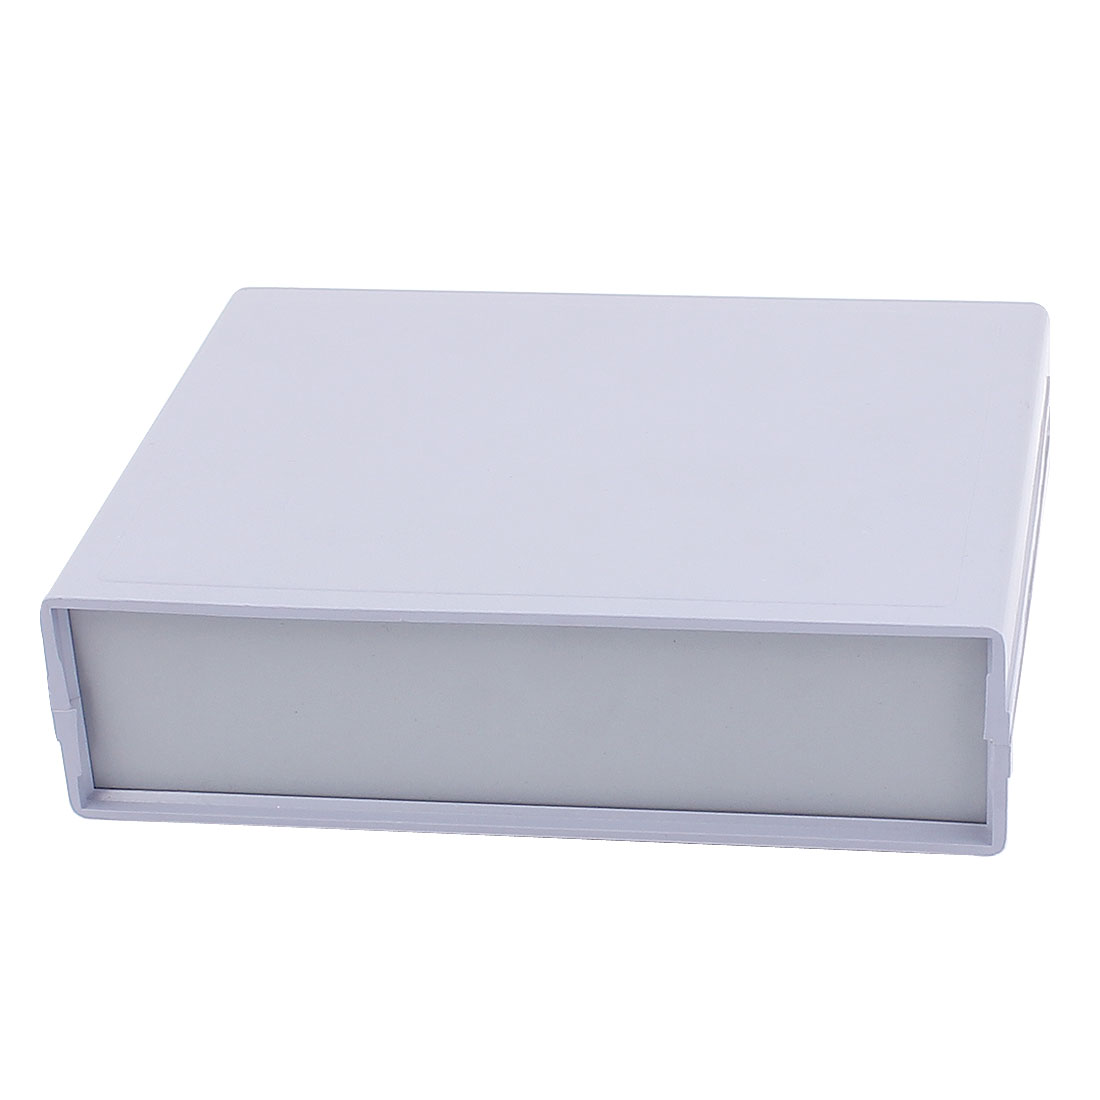 152mm x 120mm x 42mm Plastic Outdoor Electrical Enclosure Junction Box Case